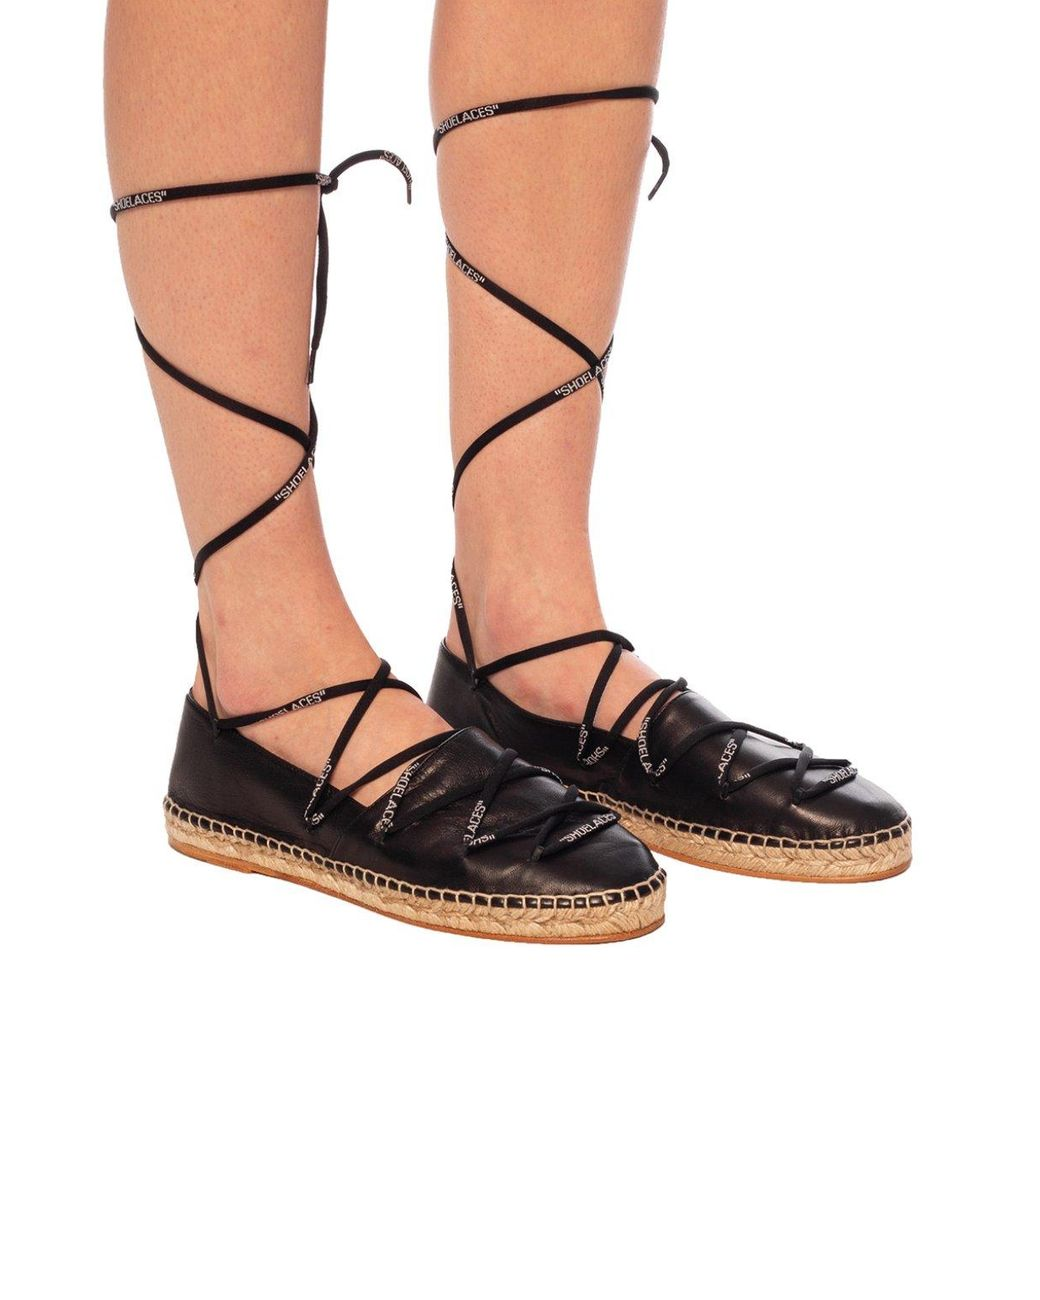 Off-White c/o Virgil Abloh Leather Lace-up Espadrilles in Black - Lyst